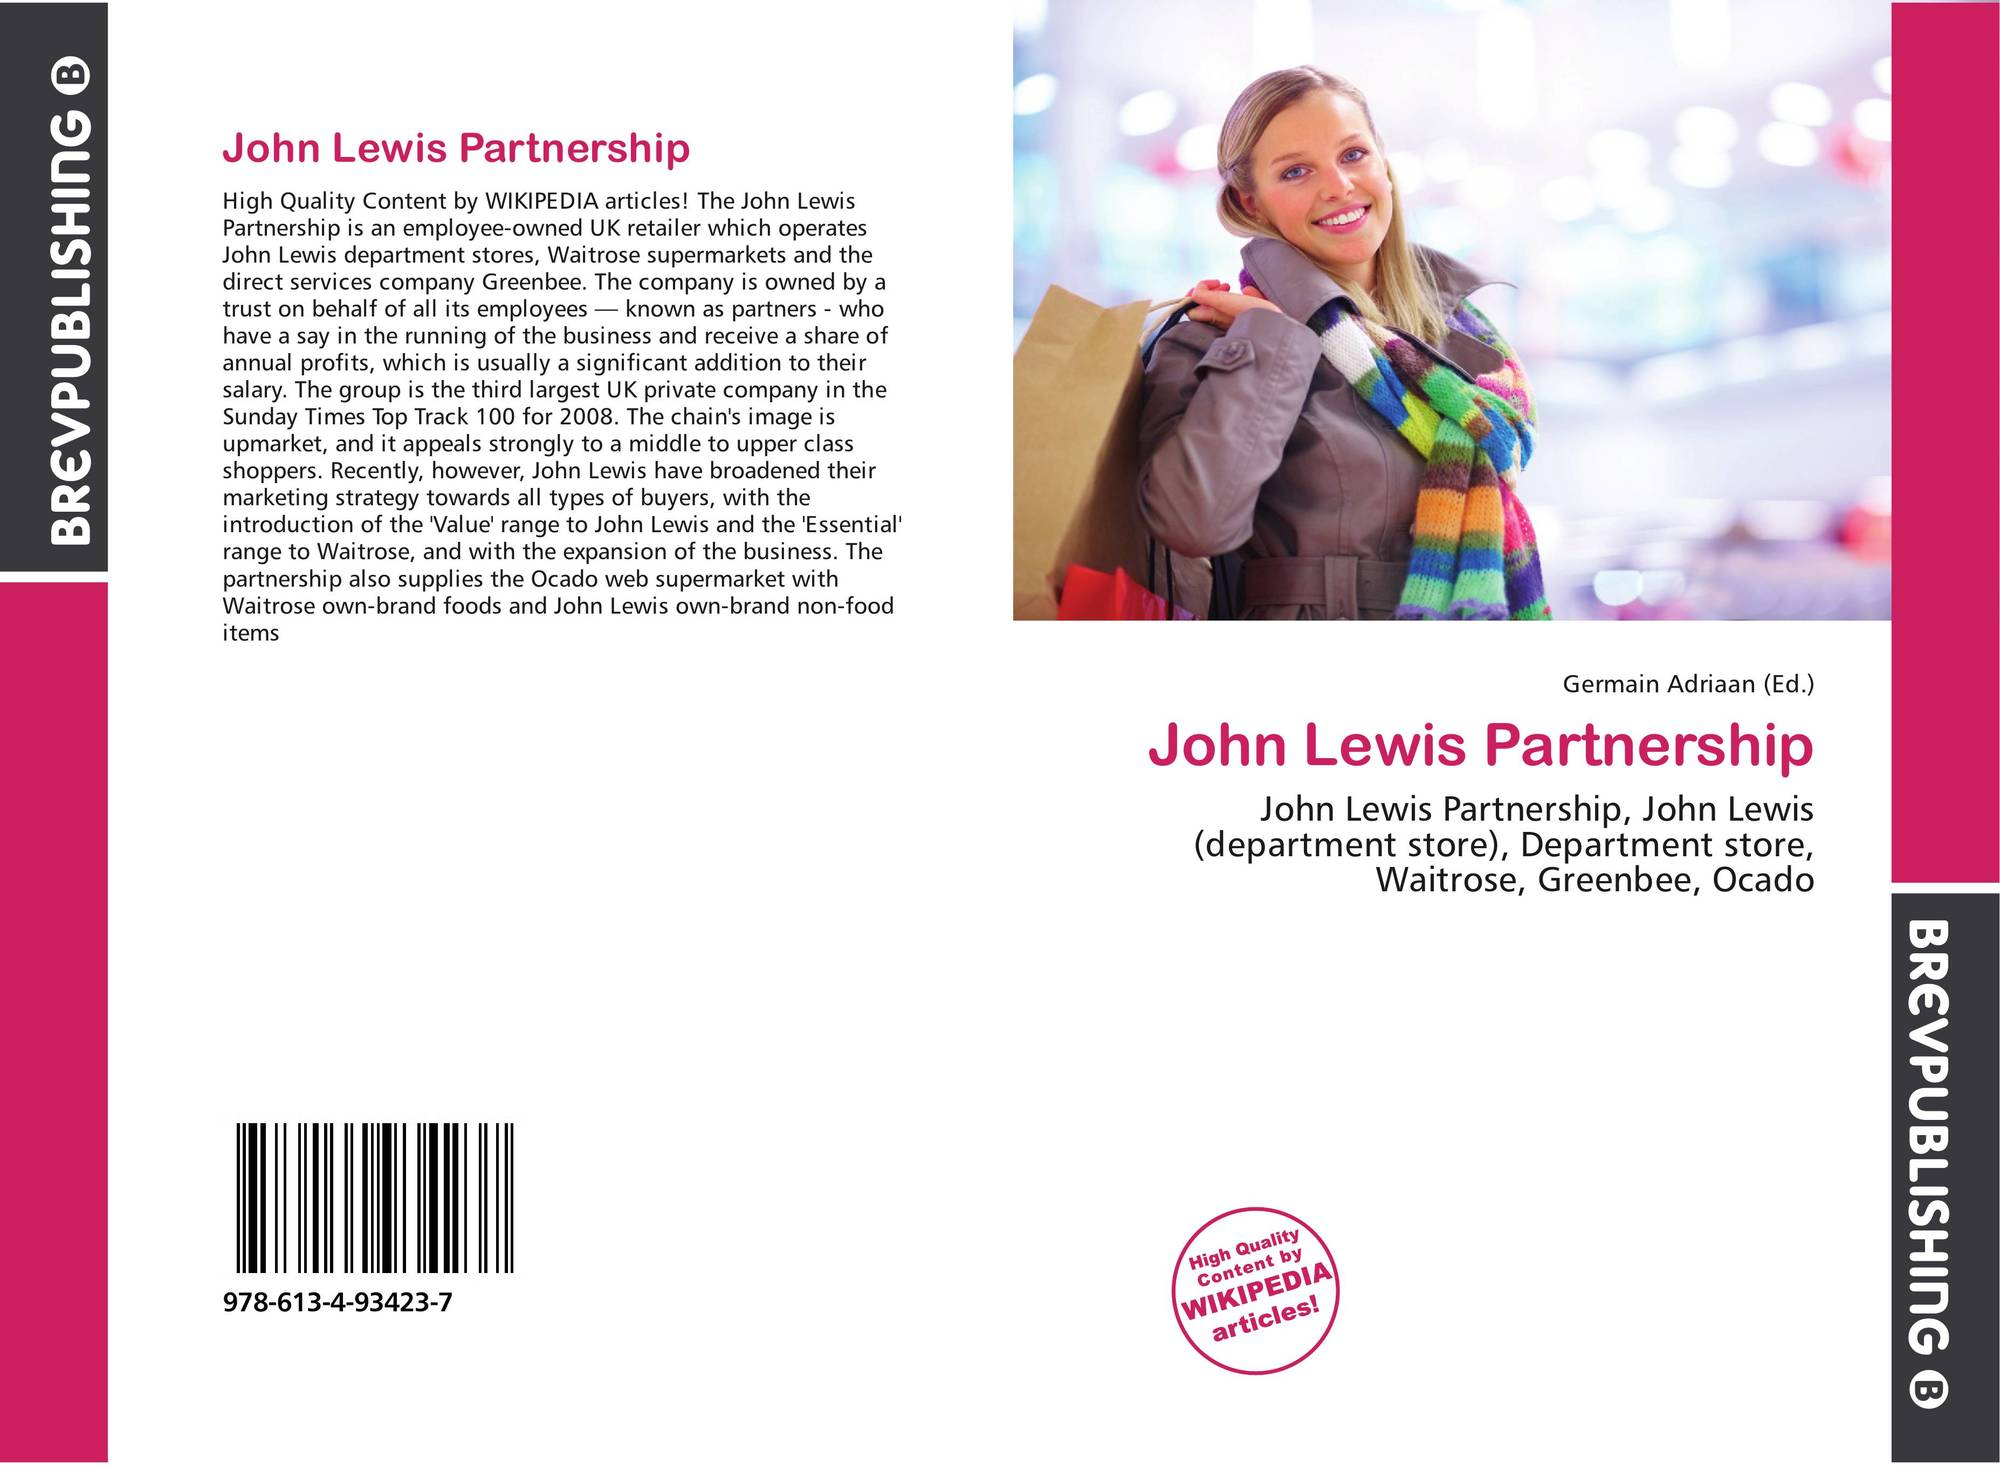 detailed analysis of john lewis partnership commerce essay `` the john lewis partnership 's 81,000 partners own the taking uk retail concerns - john lewis and waitrose our laminitis 's vision of a successful concern powered by its this study will discourse the strategic direction tools showing accomplishments of analysis rating and synthesis of john lewis.